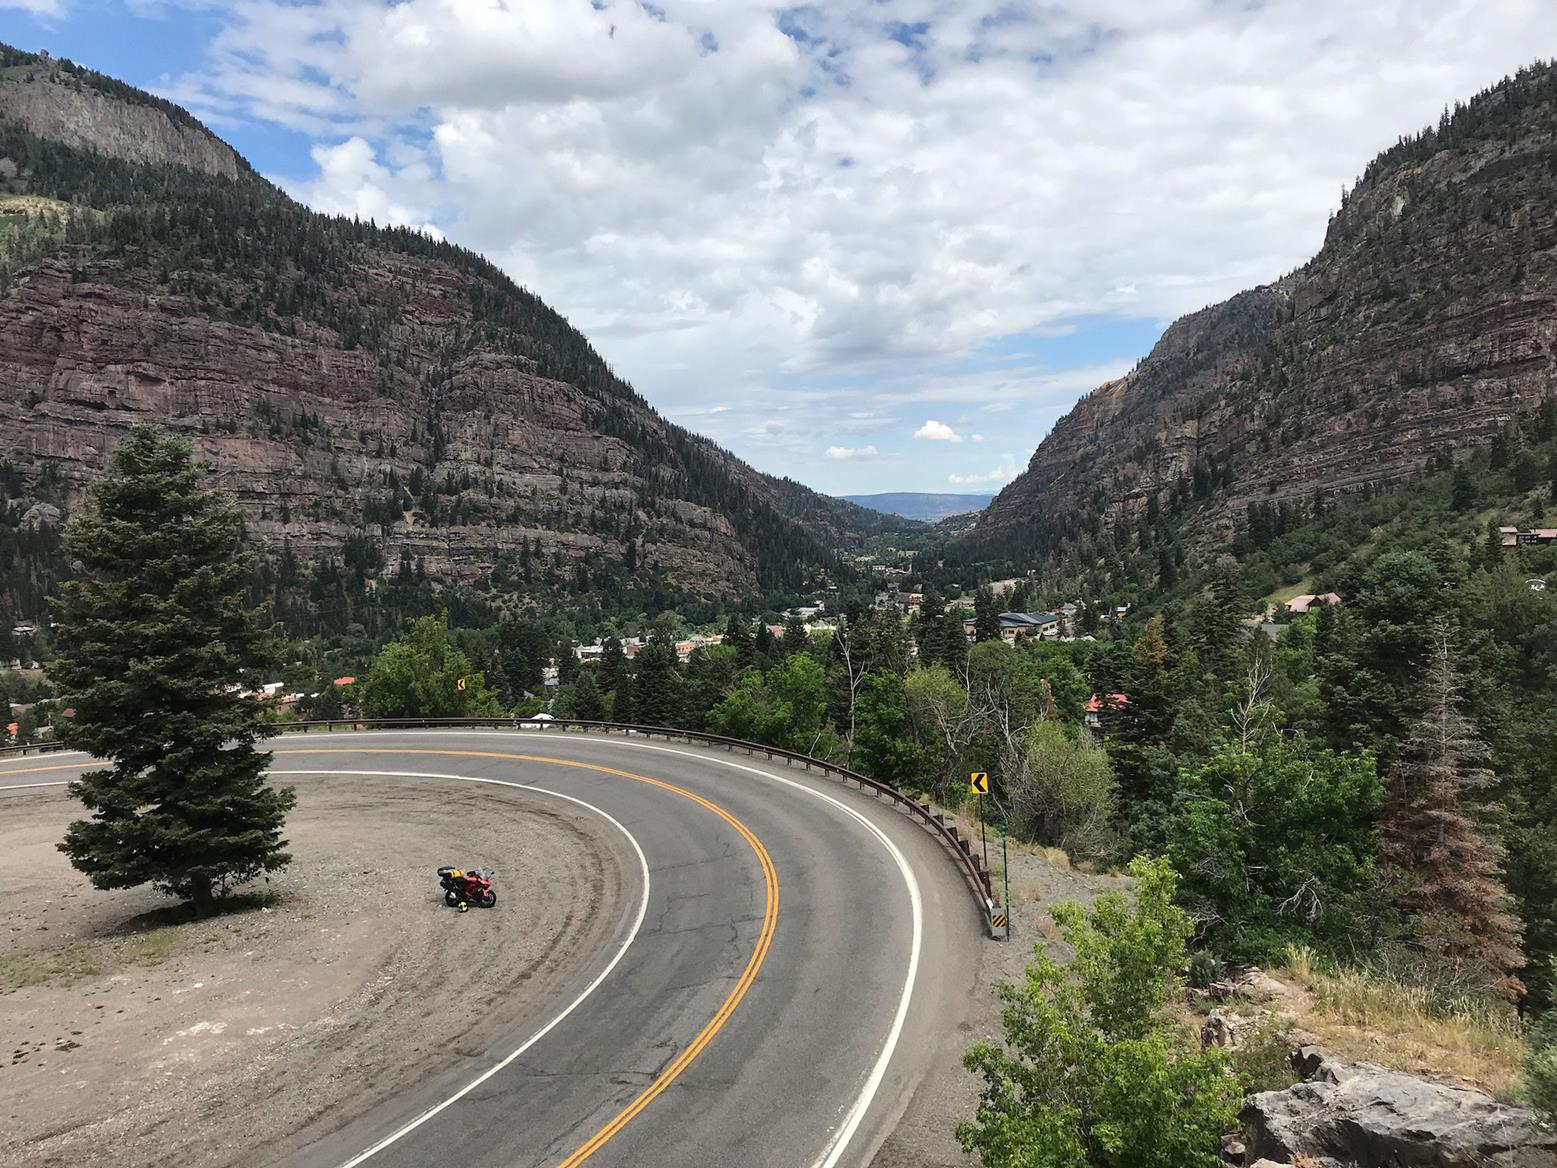 One of the many curves on the Million Dollar Highway